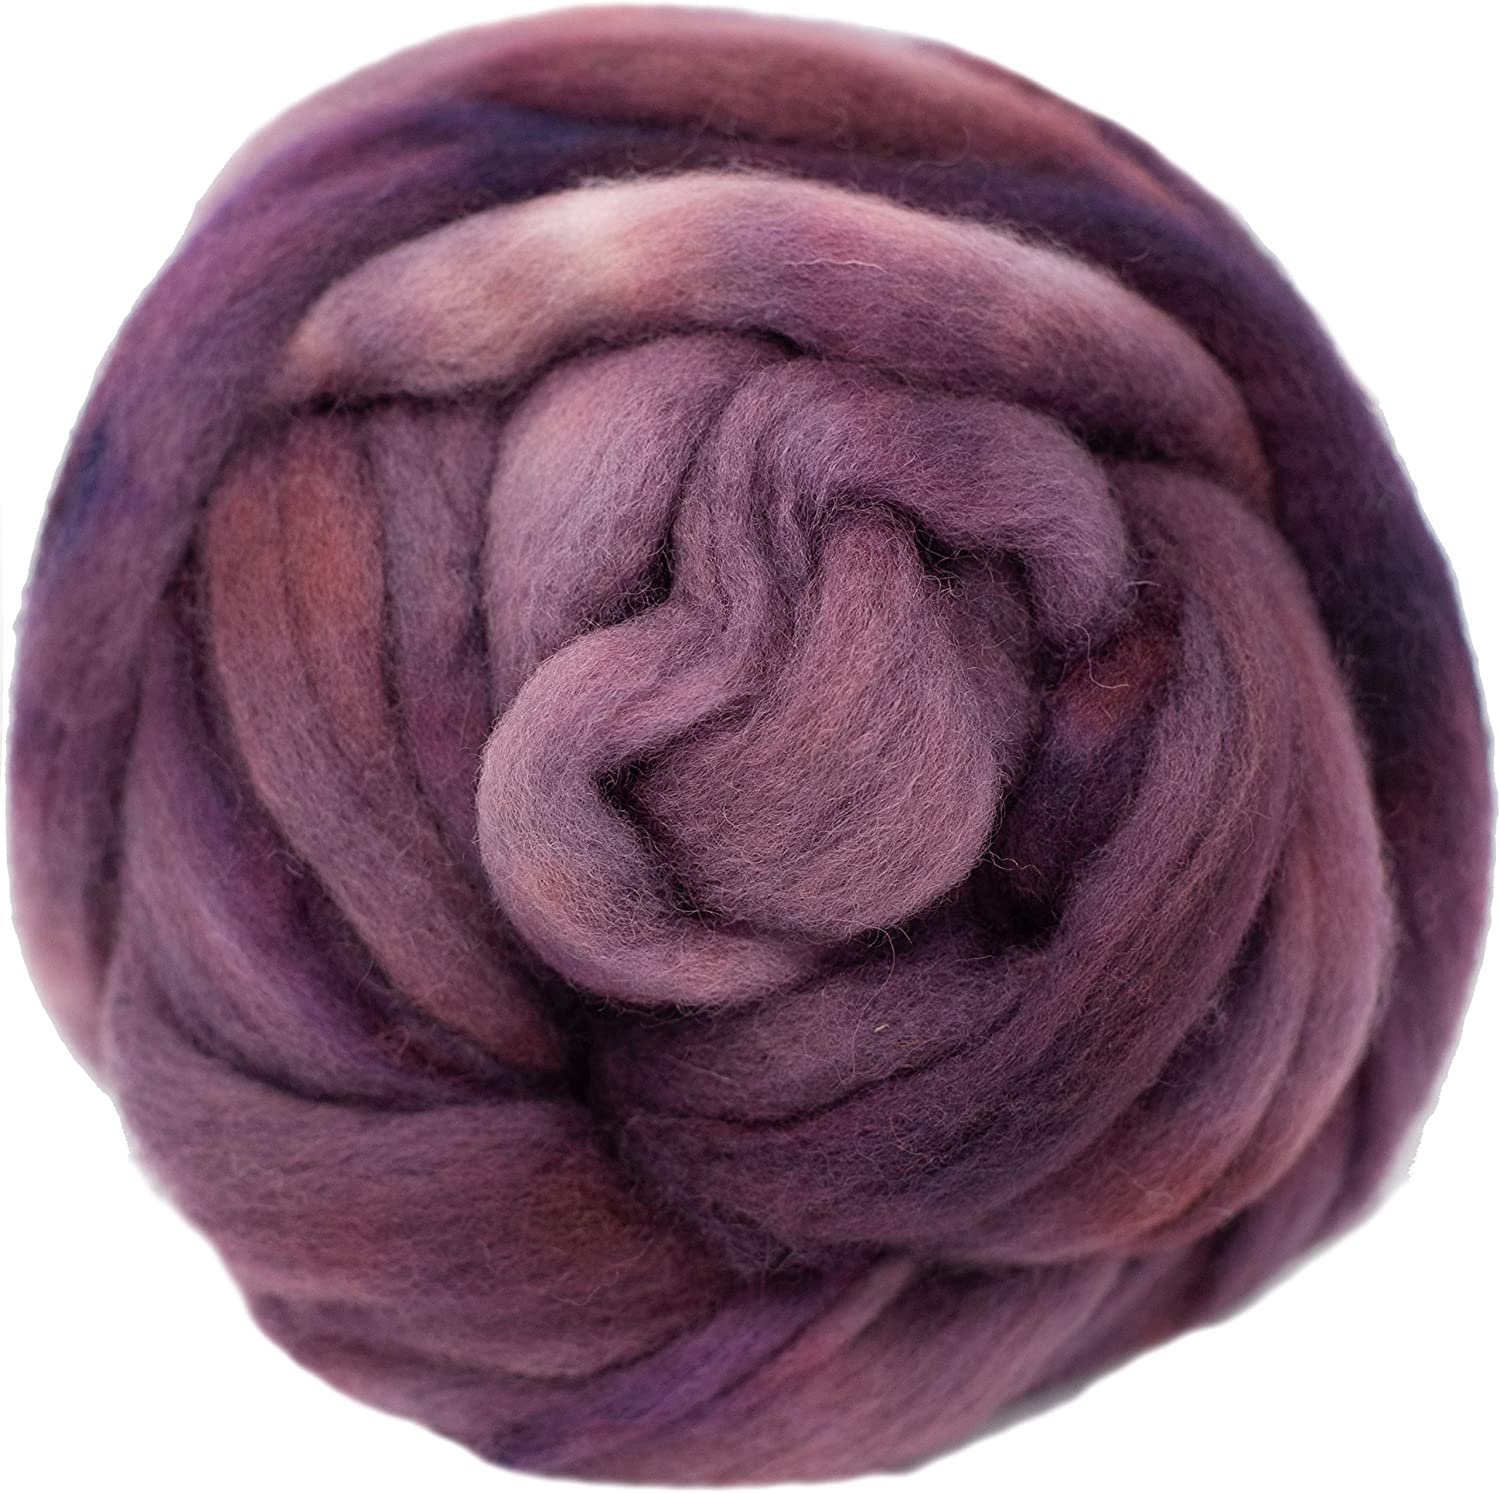 Wool Roving Max 69% OFF Hand Dyed. Super Superior Soft BFL Pre-Drafted Top Combed for